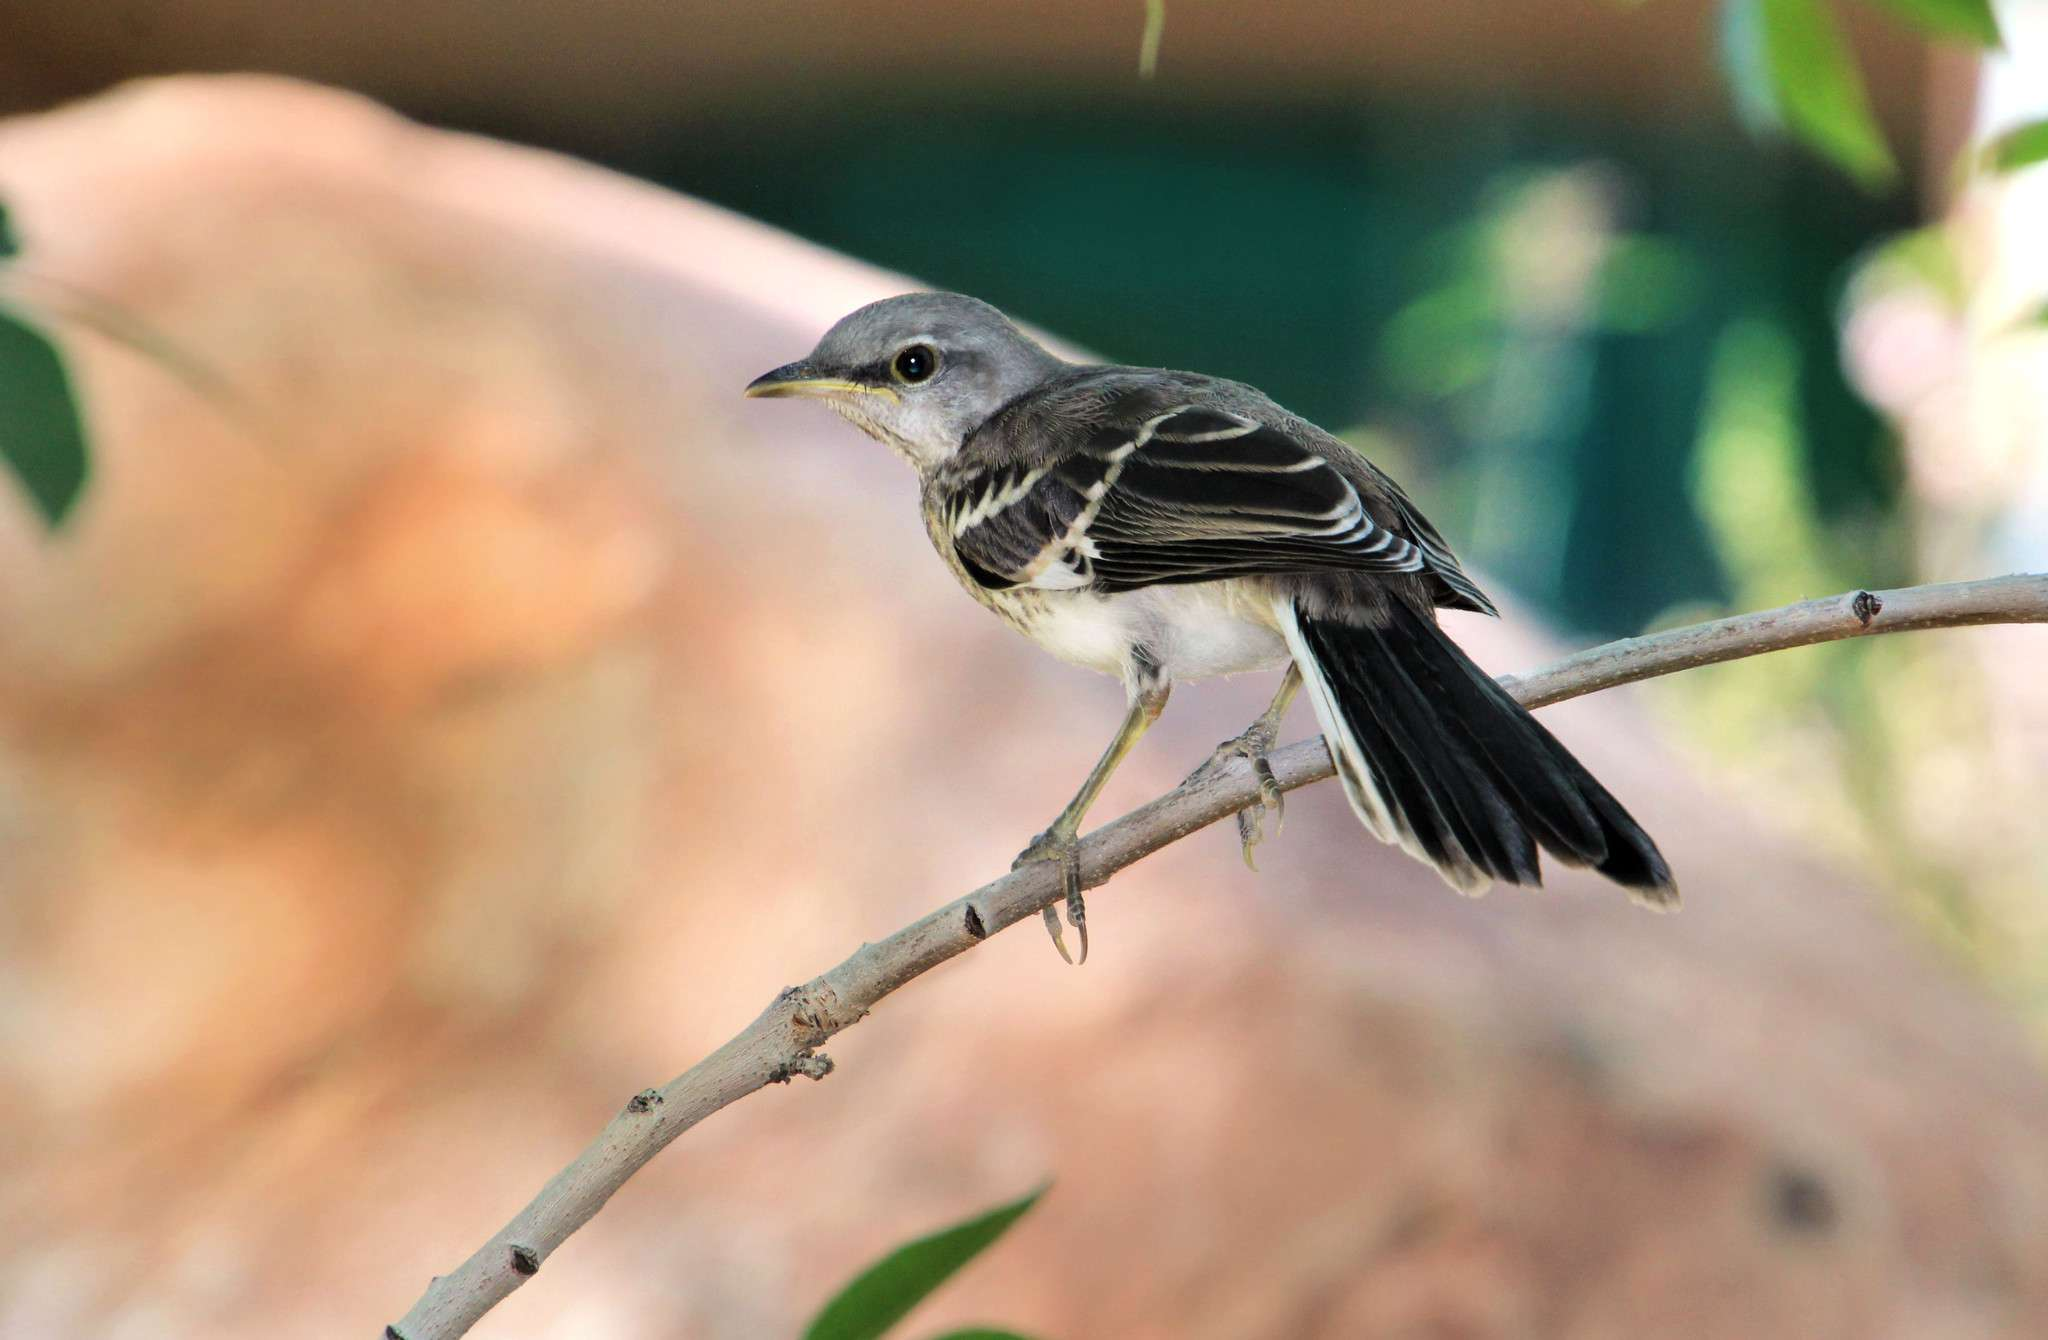 Northern mockingbird perched on a branch